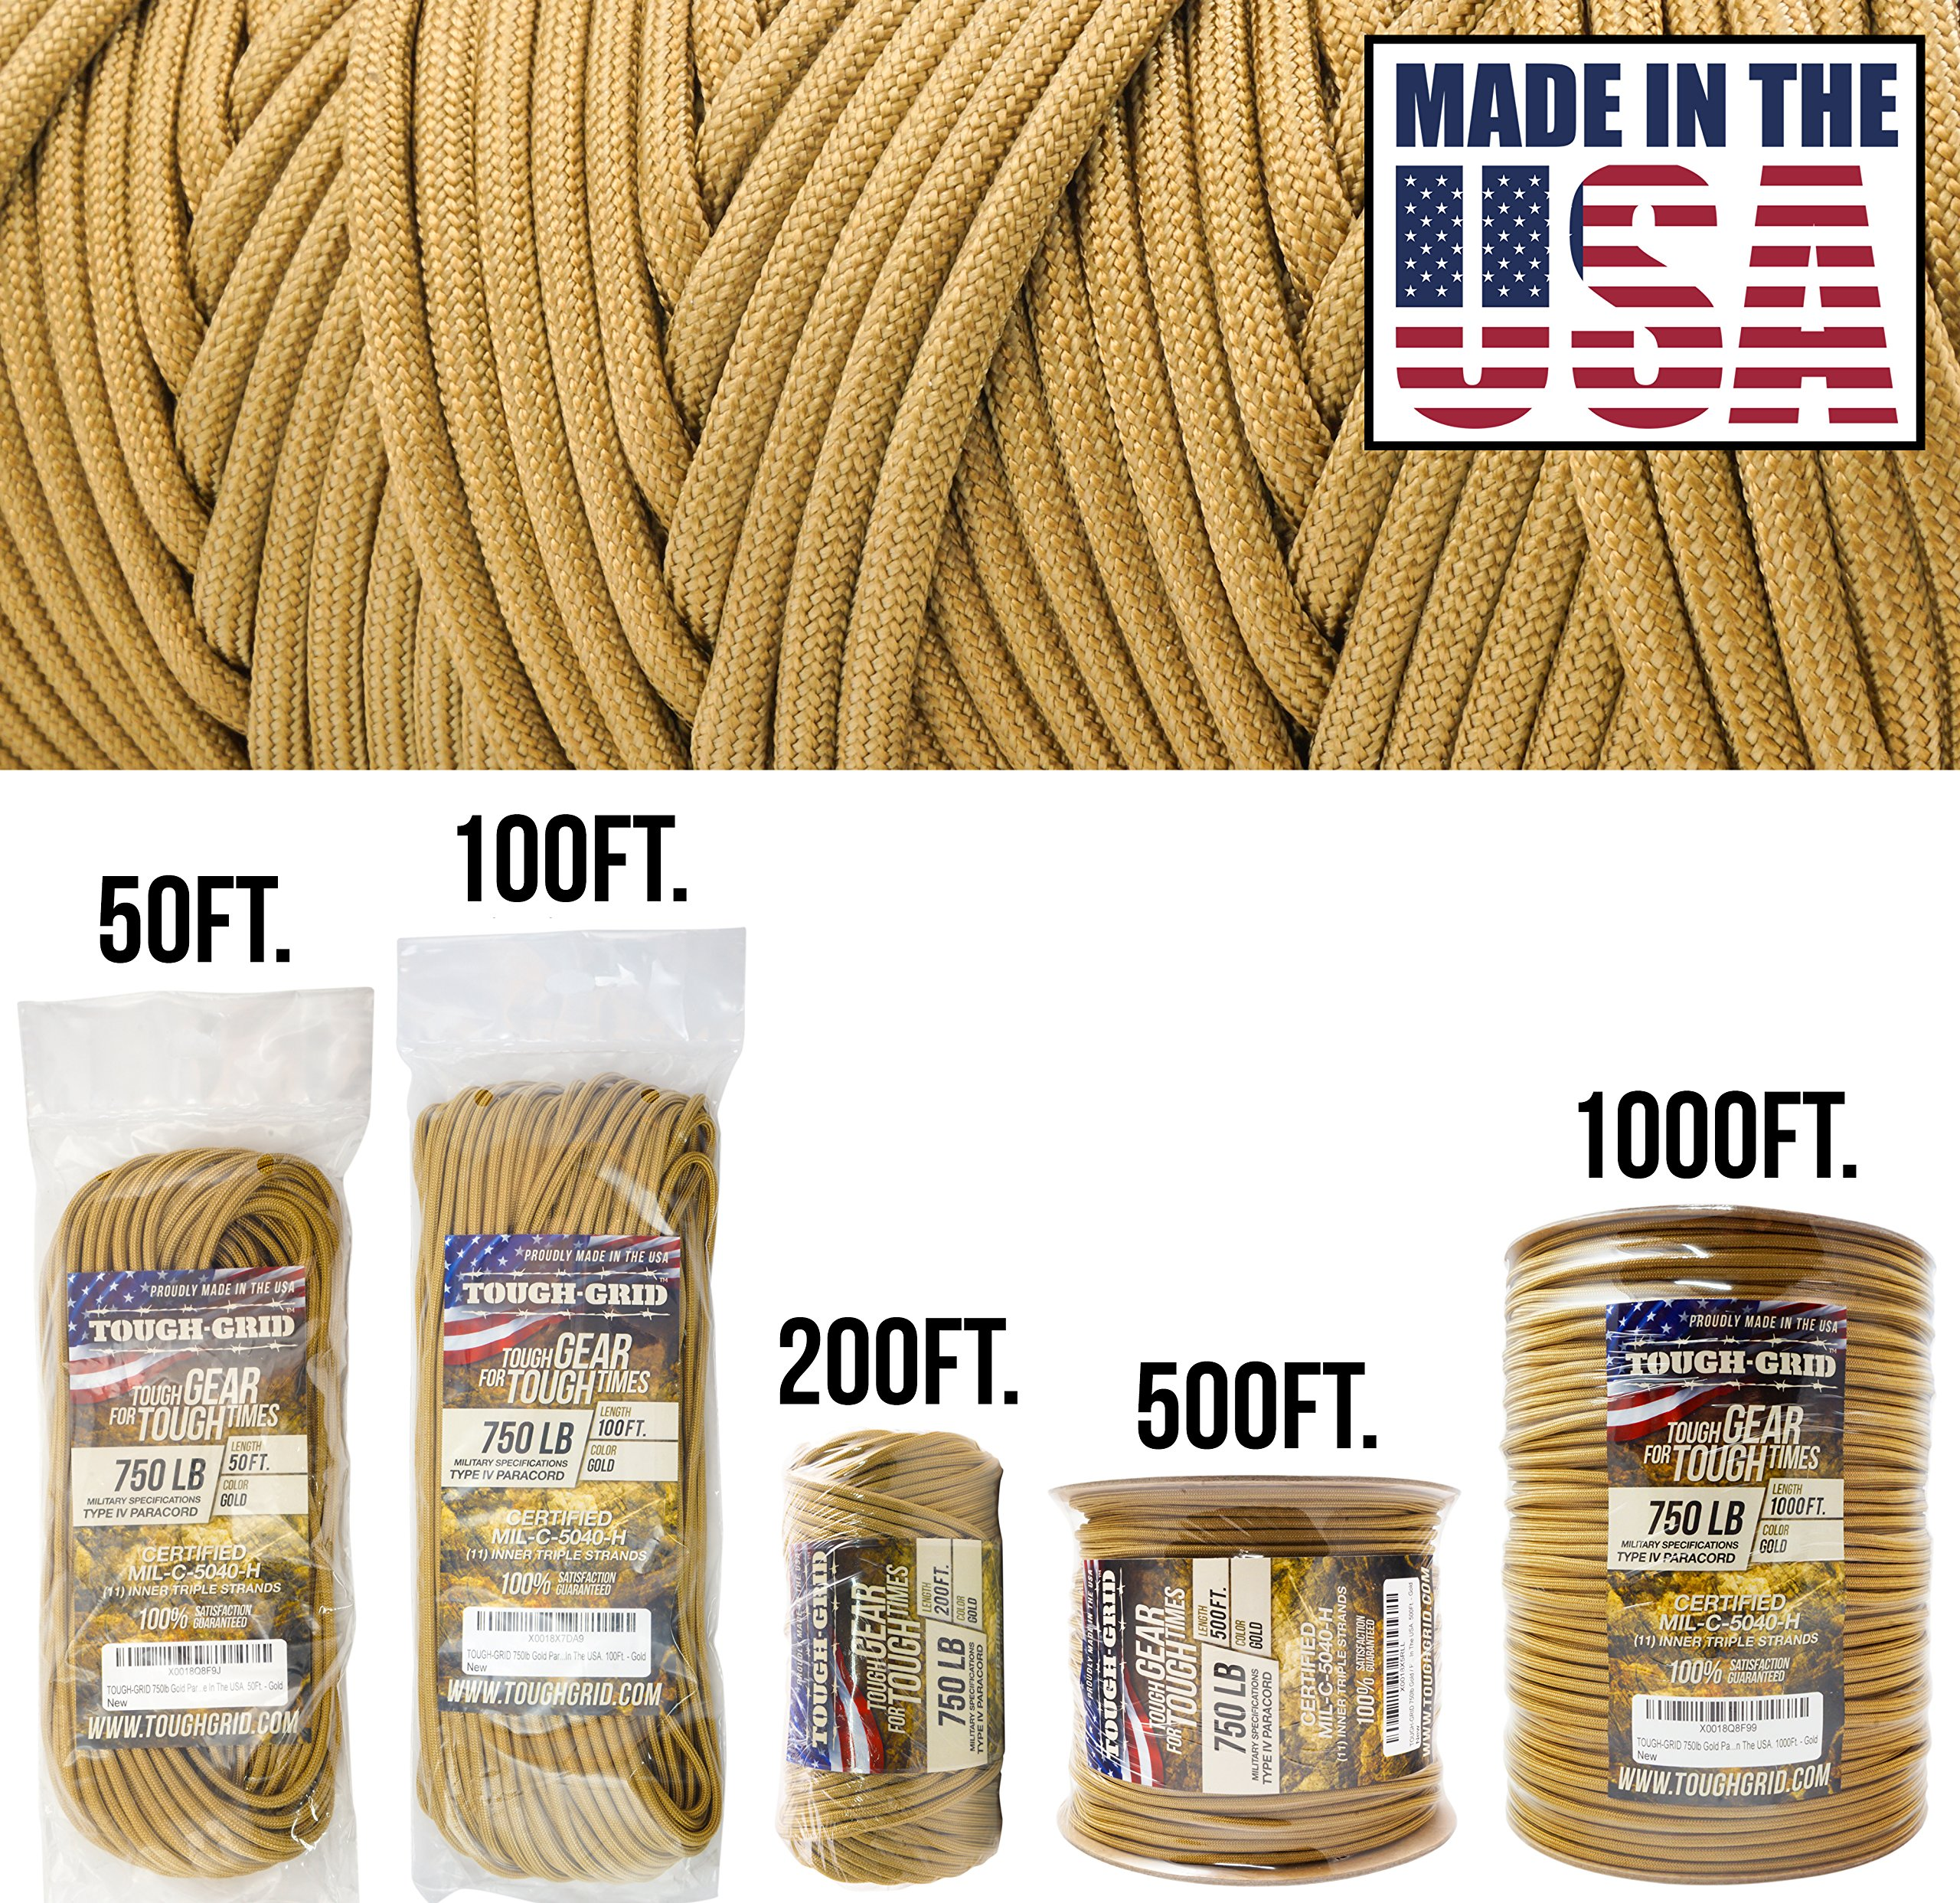 TOUGH-GRID 750lb Gold Paracord/Parachute Cord - Genuine Mil Spec Type IV 750lb Paracord Used by The US Military (MIl-C-5040-H) - 100% Nylon - Made in The USA. 100Ft. - Gold by TOUGH-GRID